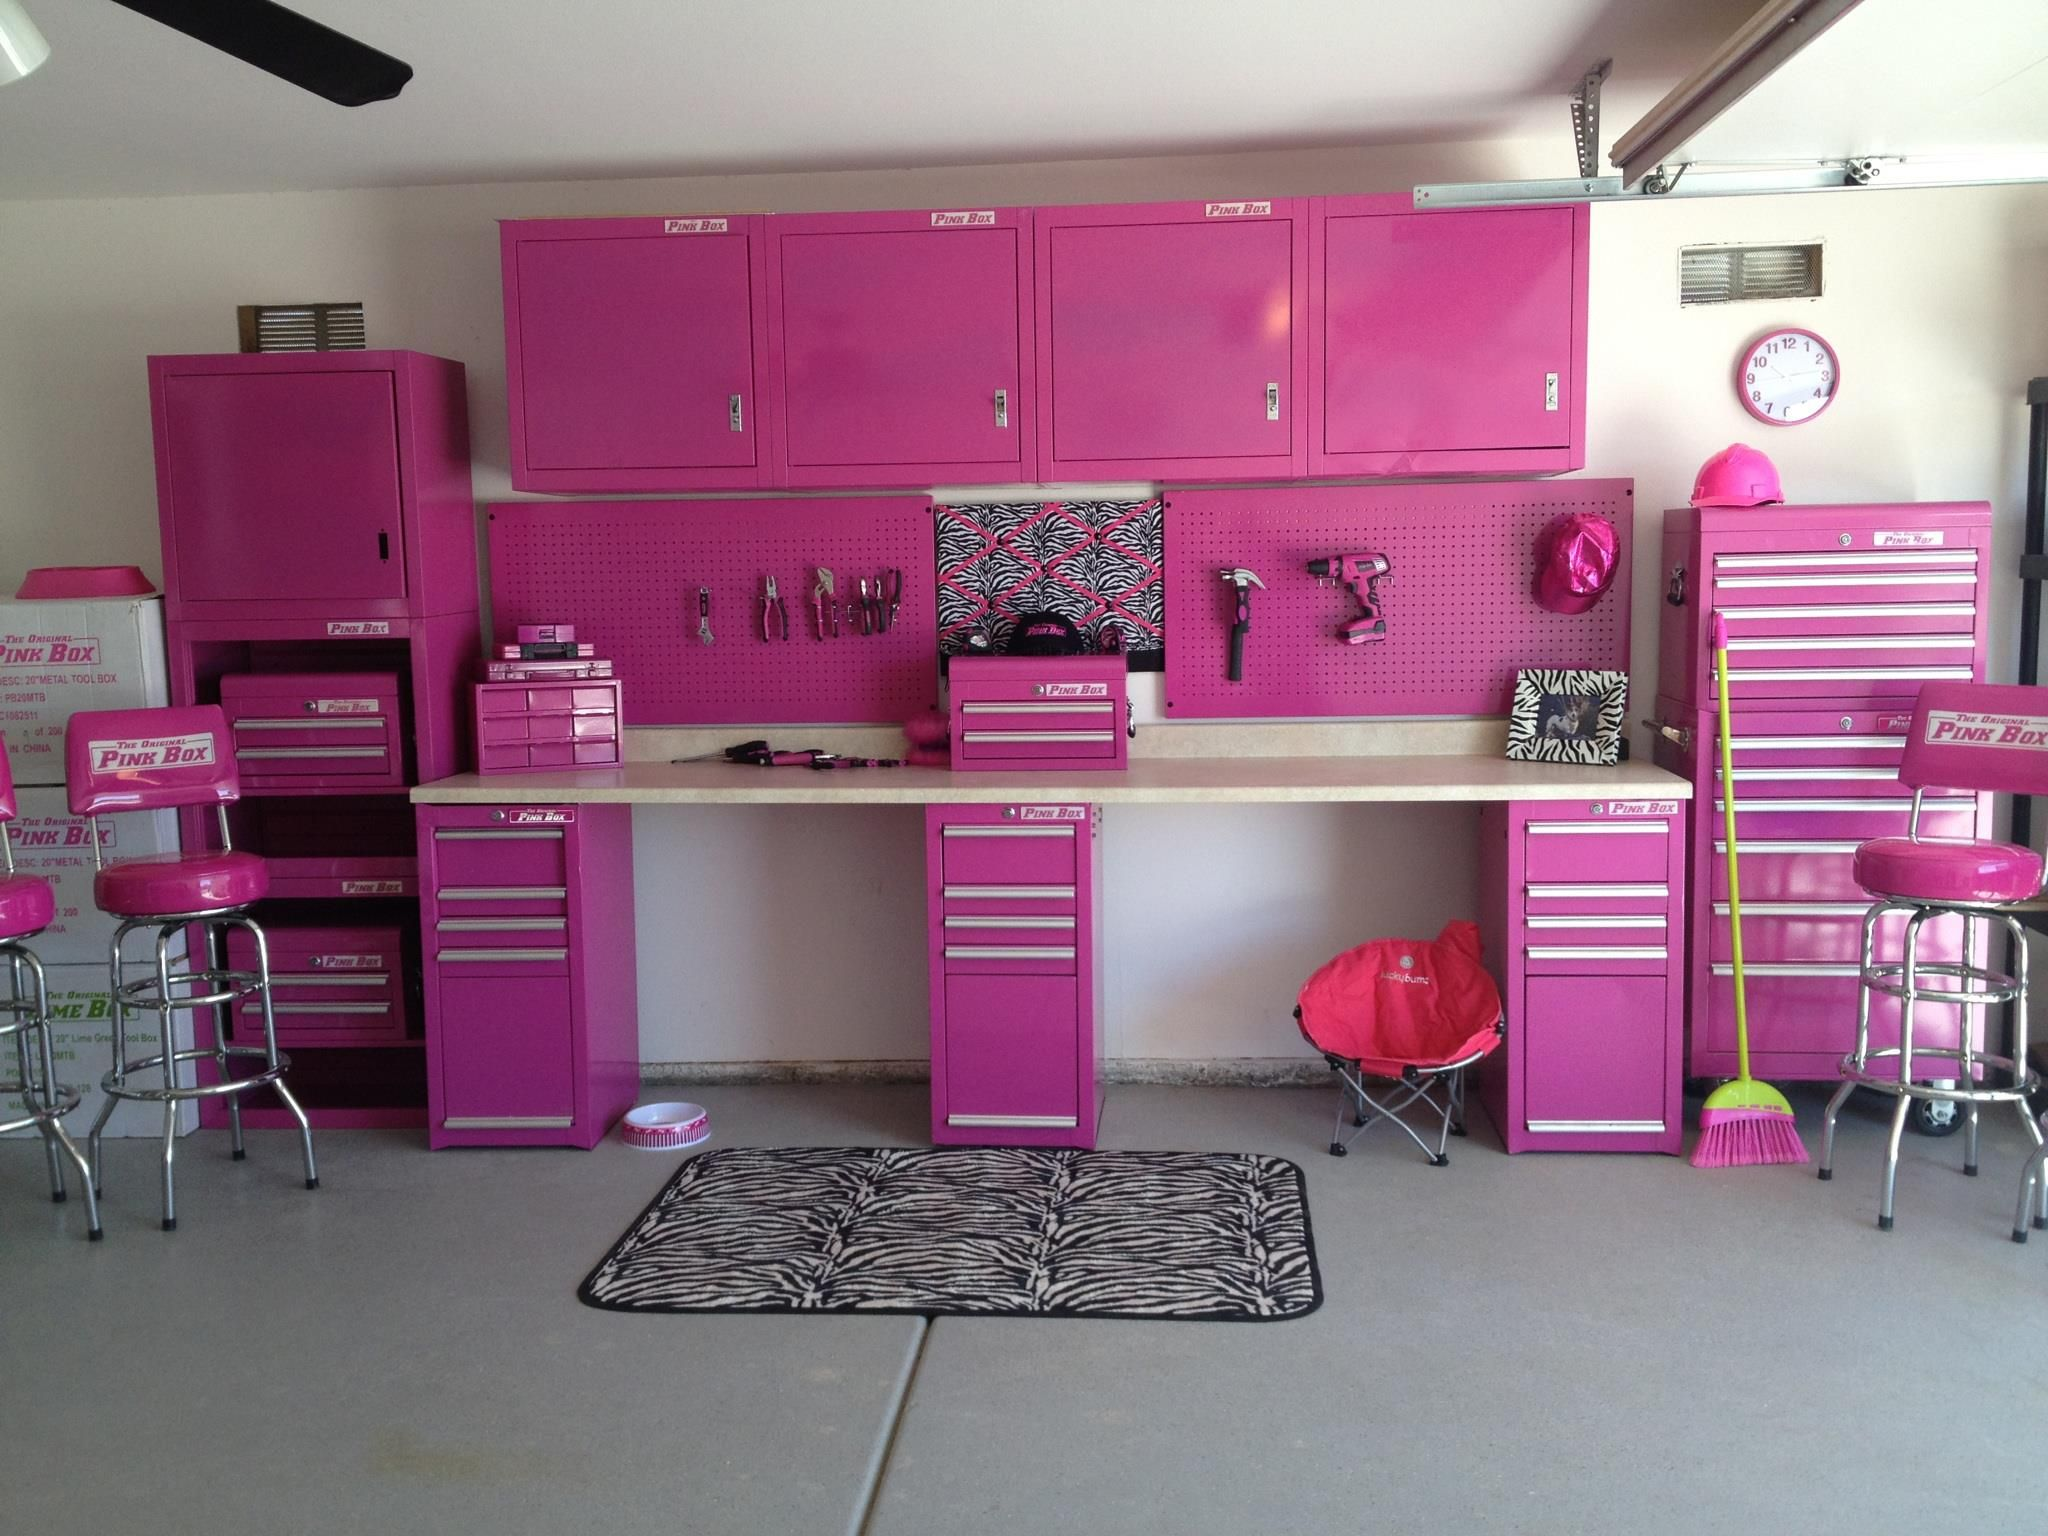 Surprising Pink Tool Boxes Gals Side Guys Side Camo Black Download Free Architecture Designs Grimeyleaguecom